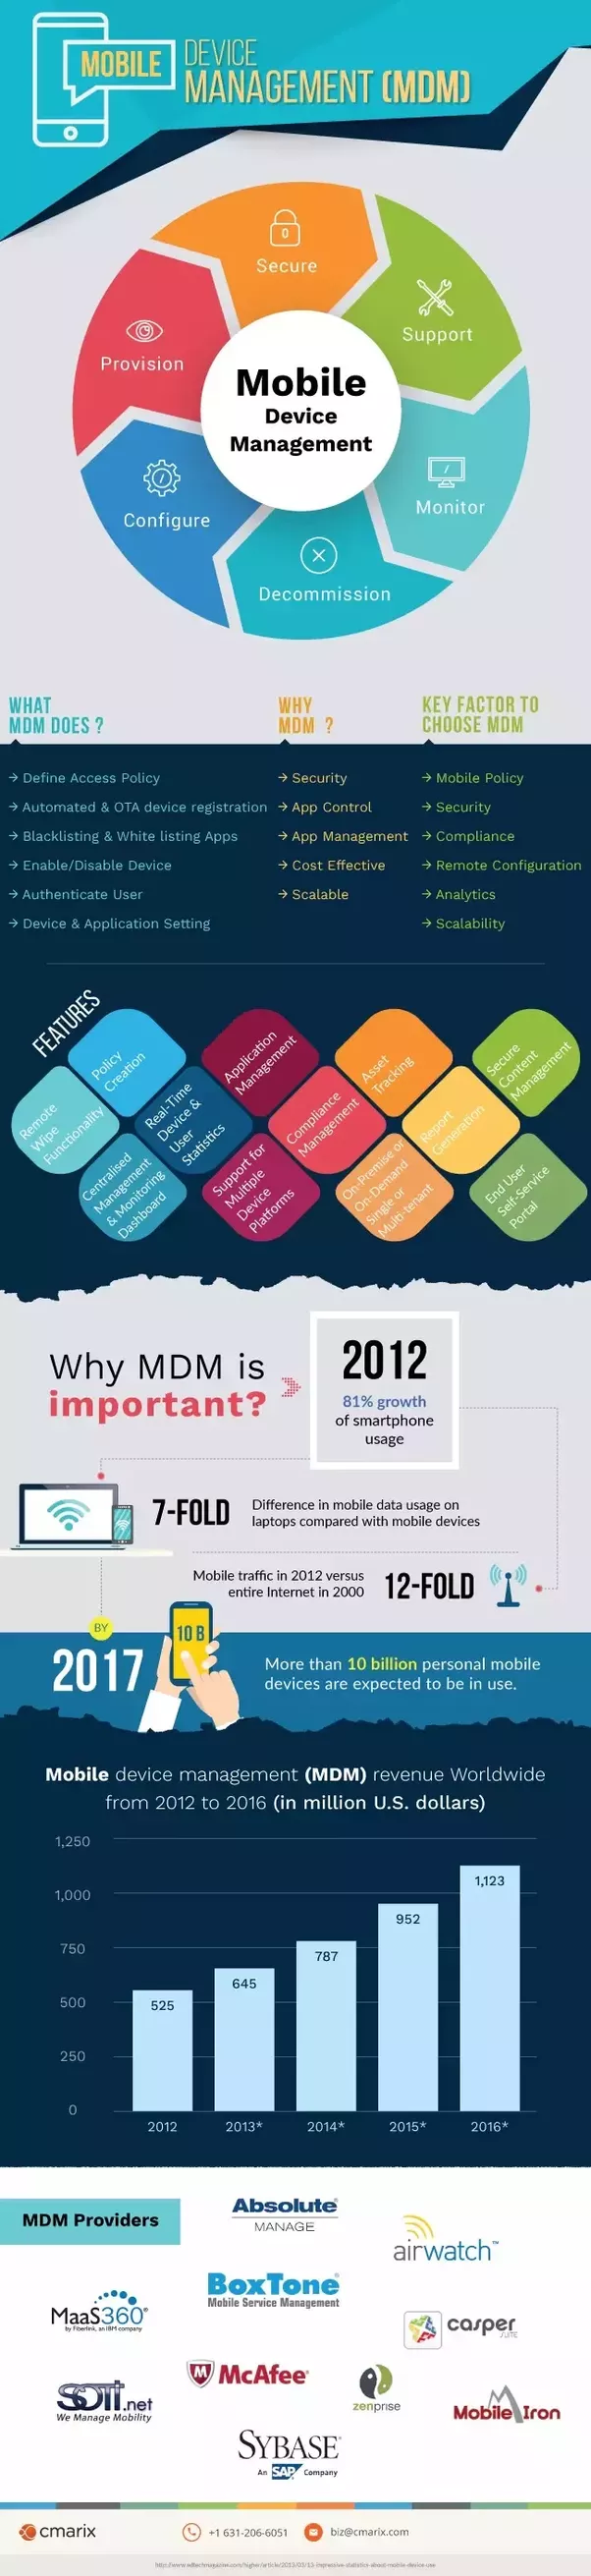 What is MDM (mobile device management)? - Quora